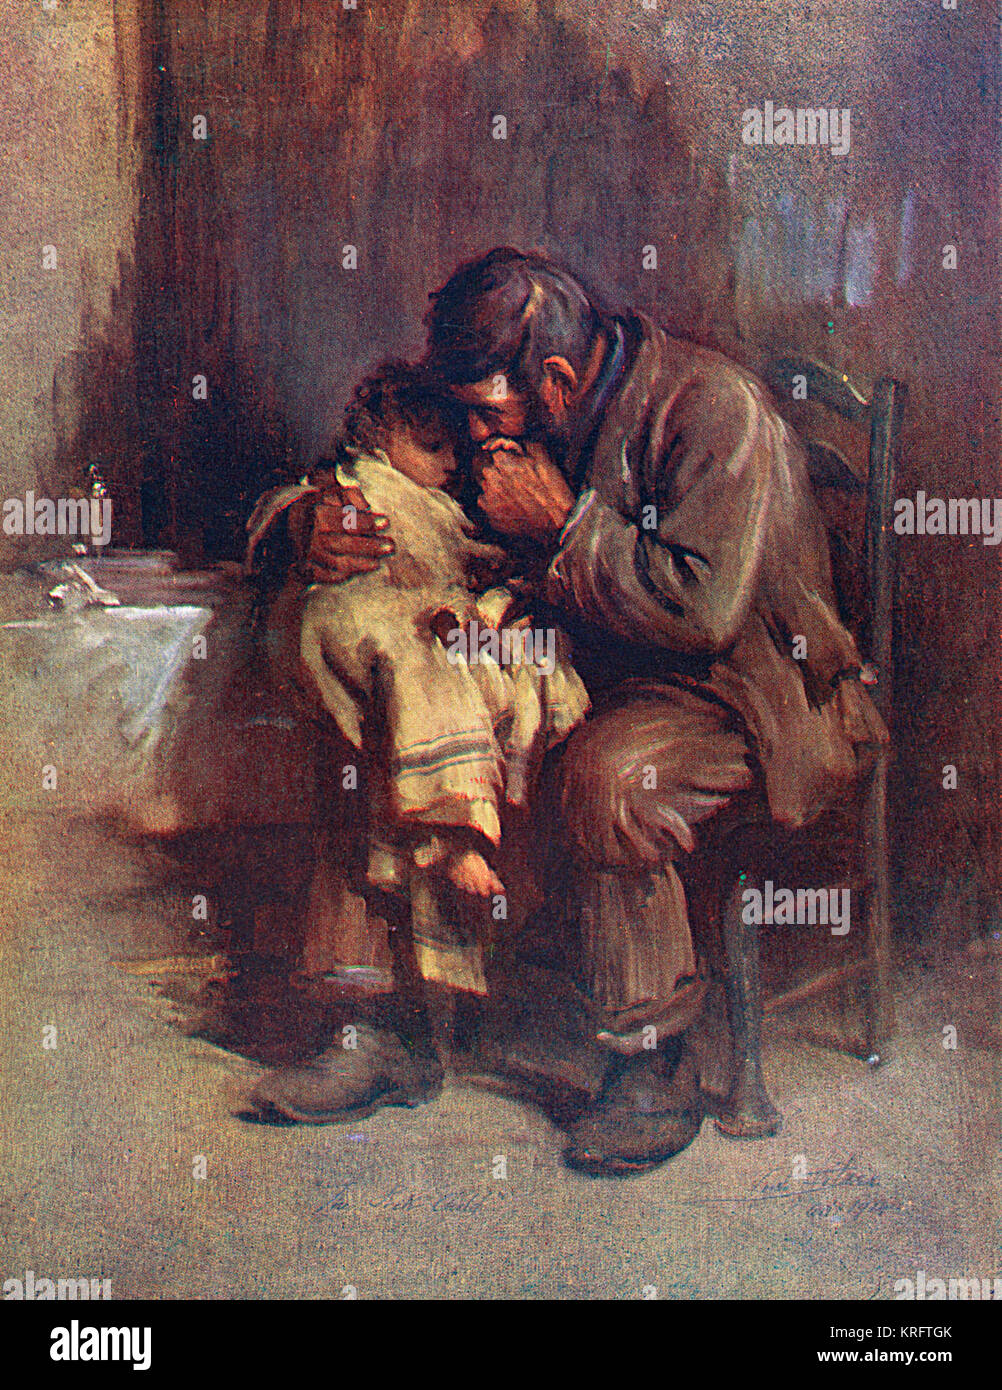 A small, motherless child is comforted by her father.     Date: 1914 - Stock Image